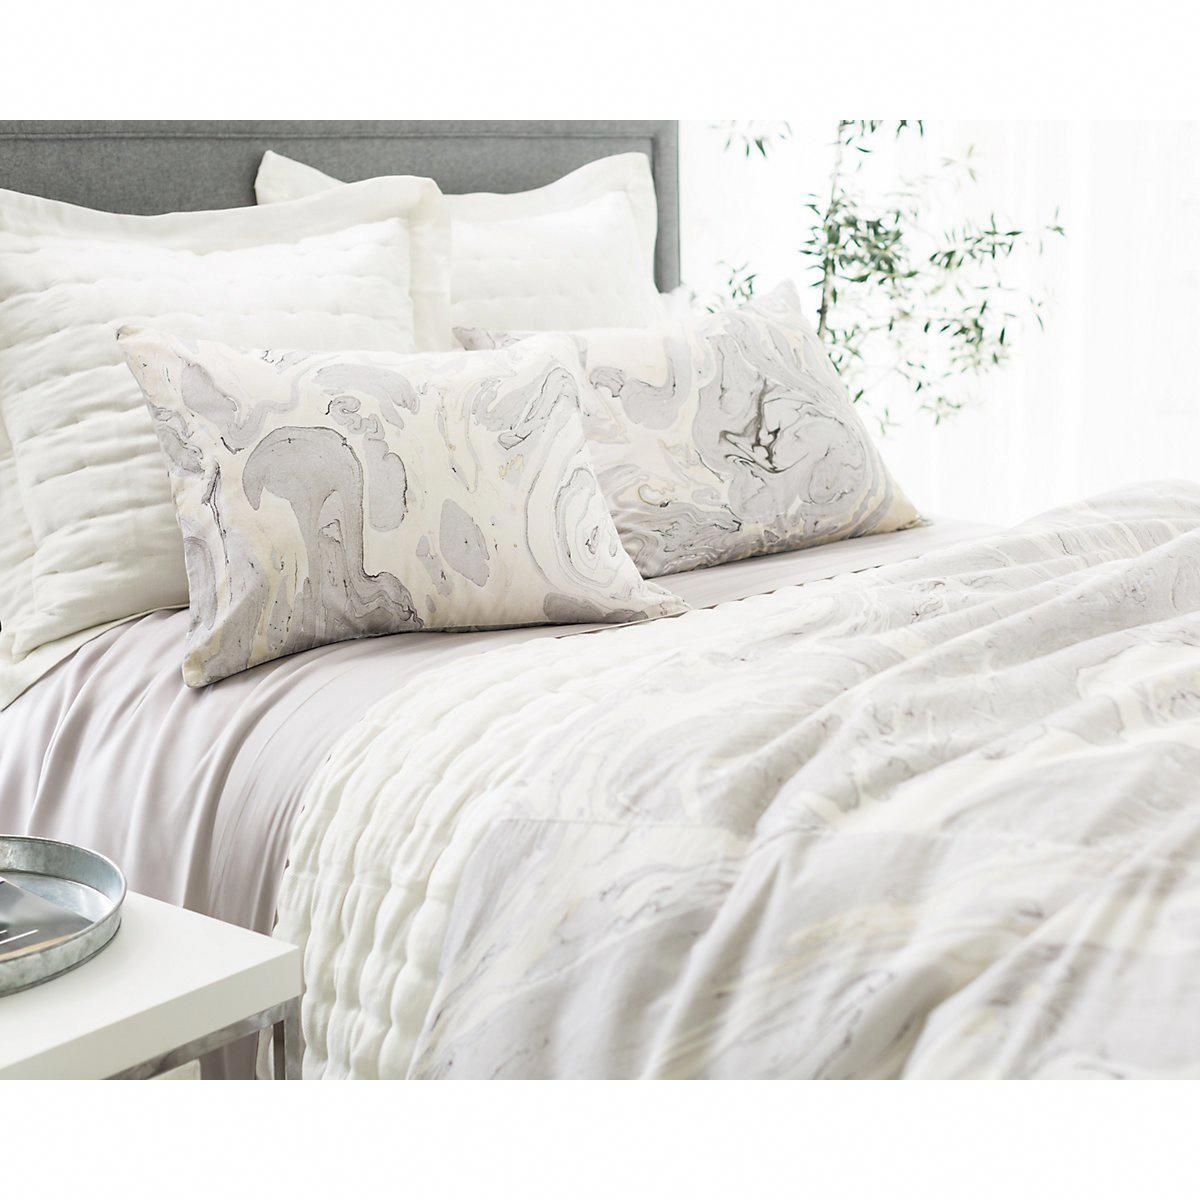 Bedding Brussels Ivory Quilted Bedding Design By Pine Cone Hill